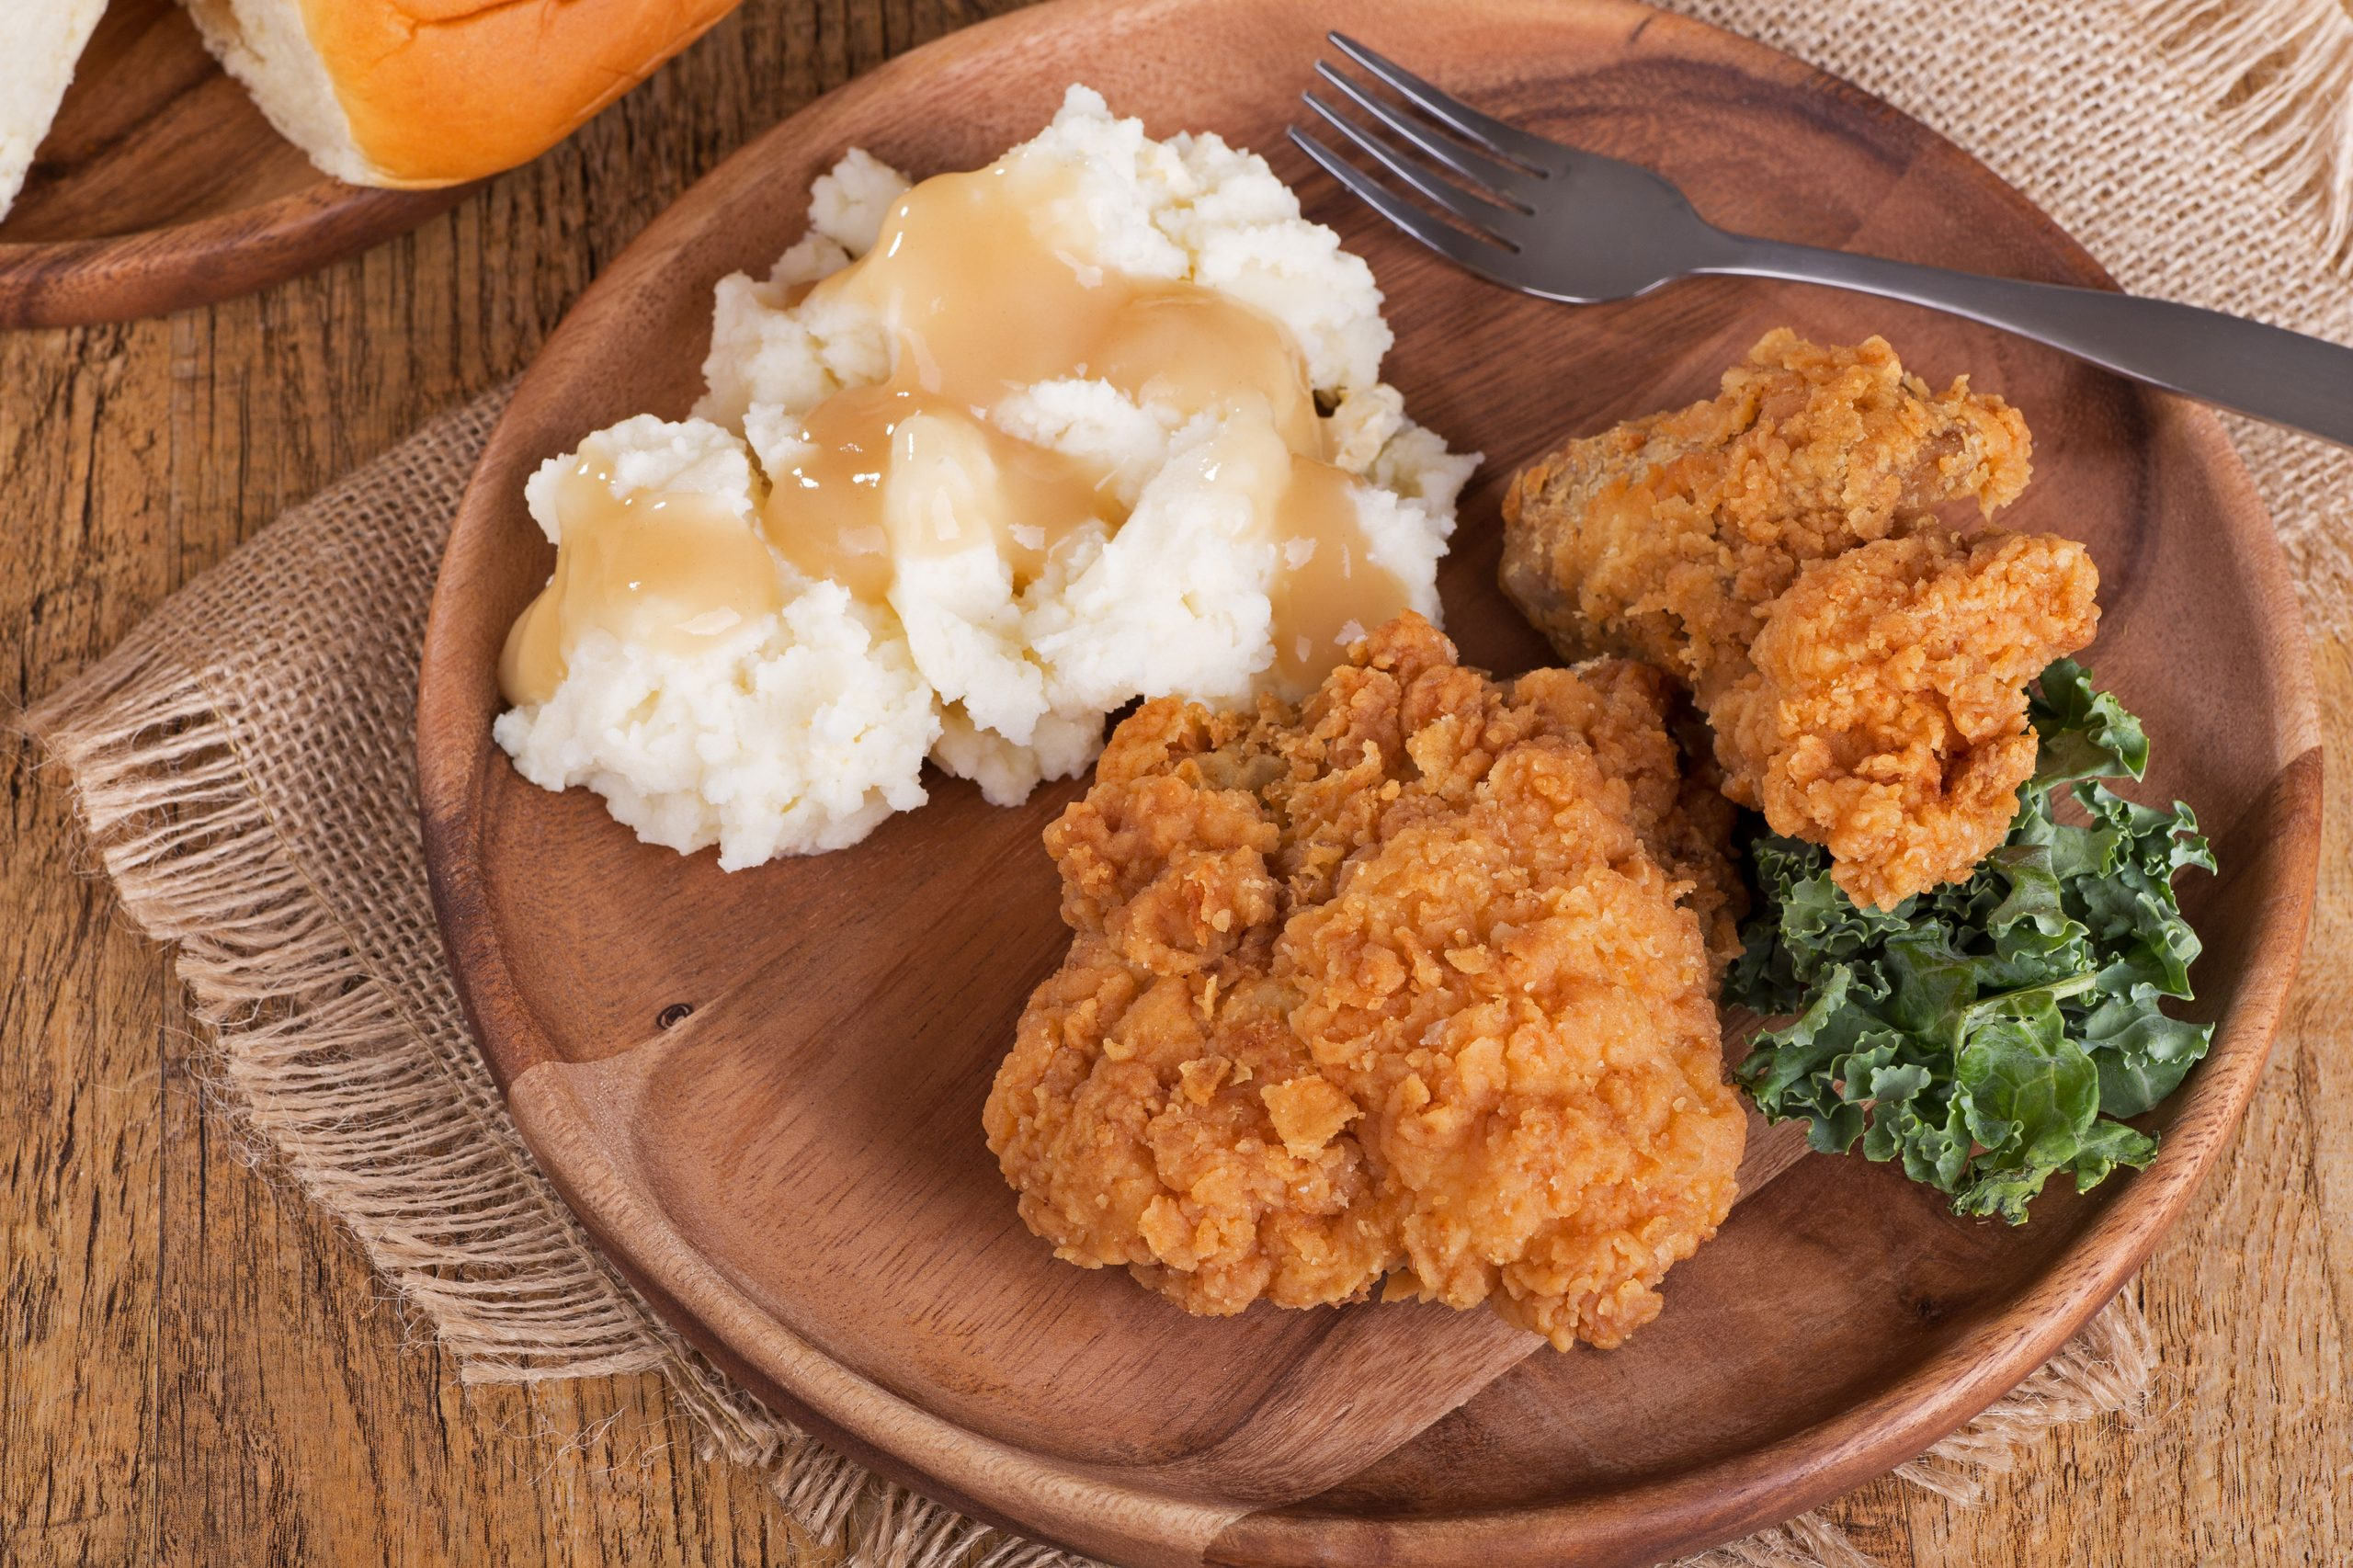 Plate of Chicken and Mashed Potatoes